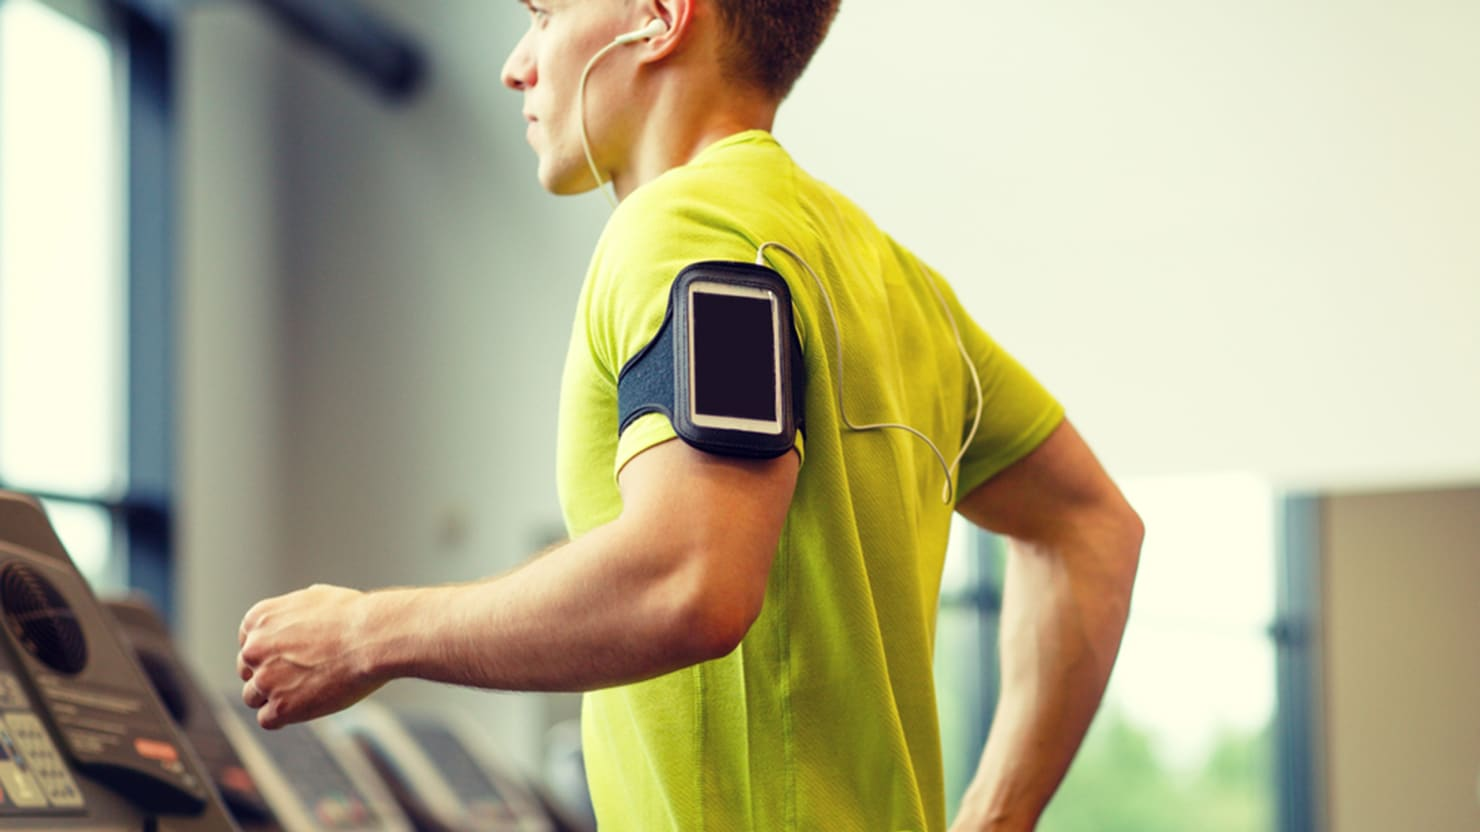 Why Apps Might Be Just as Good as Wearables for Tracking Steps